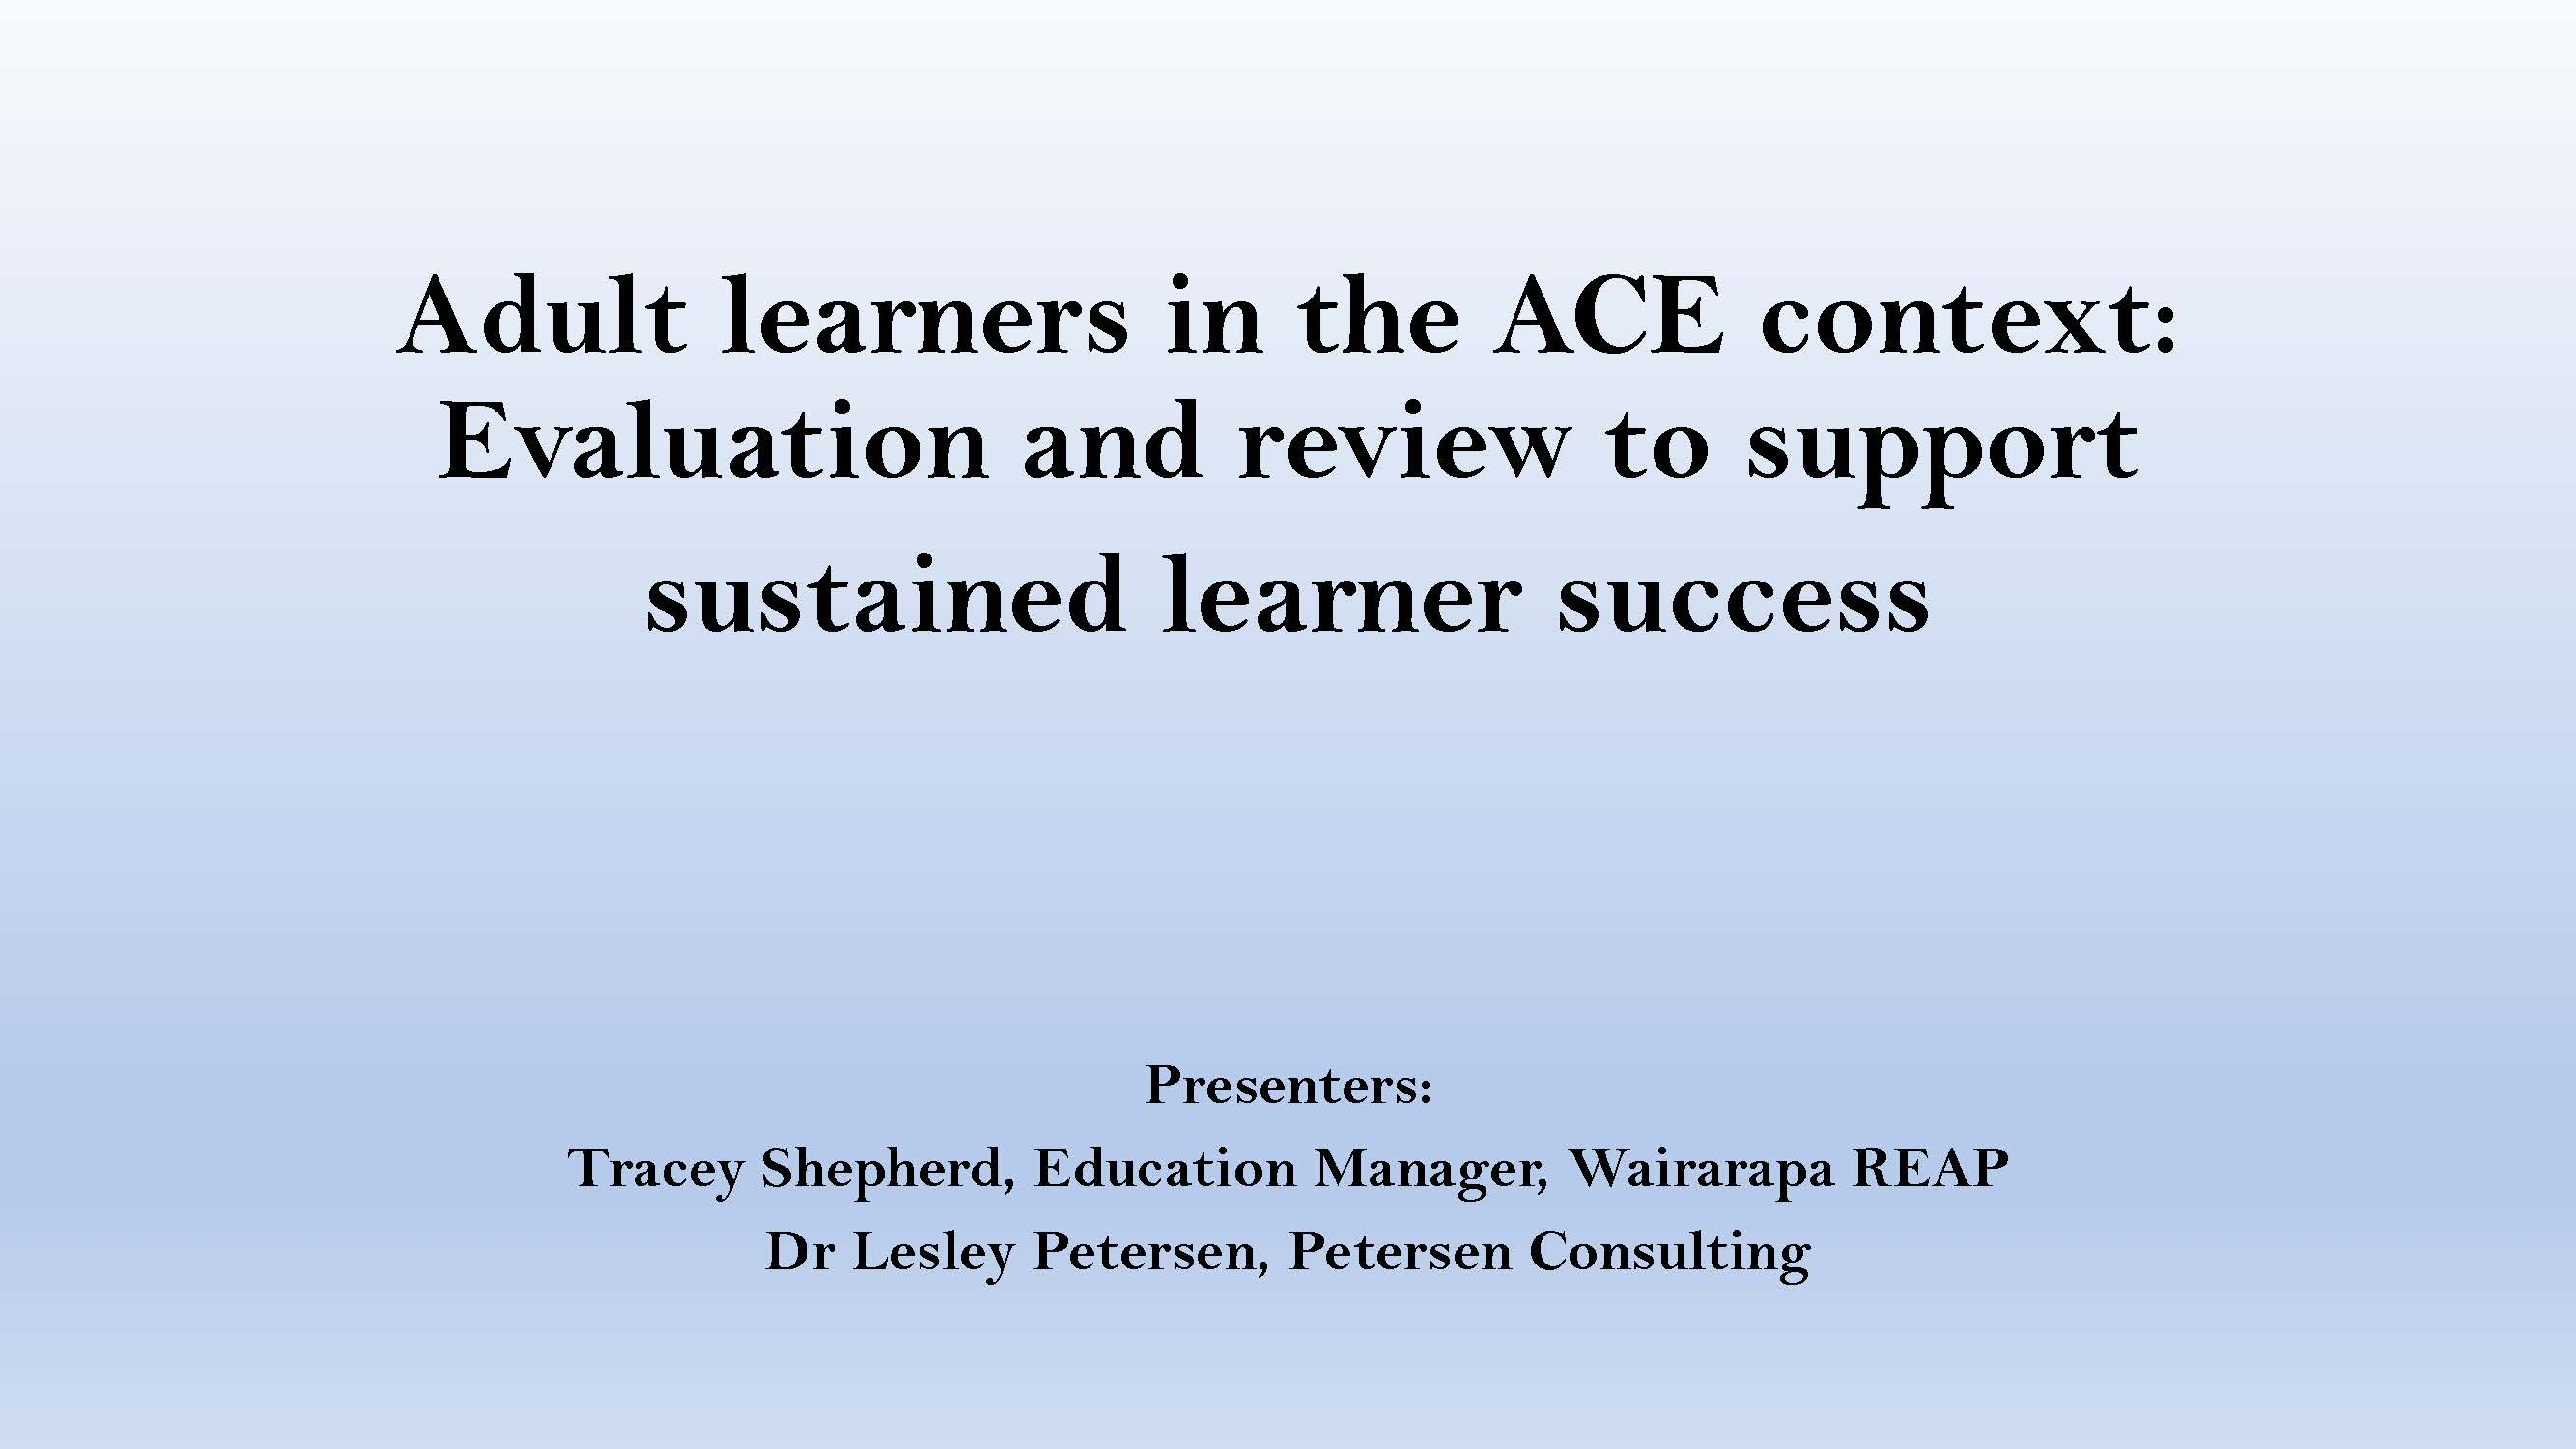 Adult learners in the ACE context-Evaluation and review to support sustained learner success ACE Conference Presentation 2017